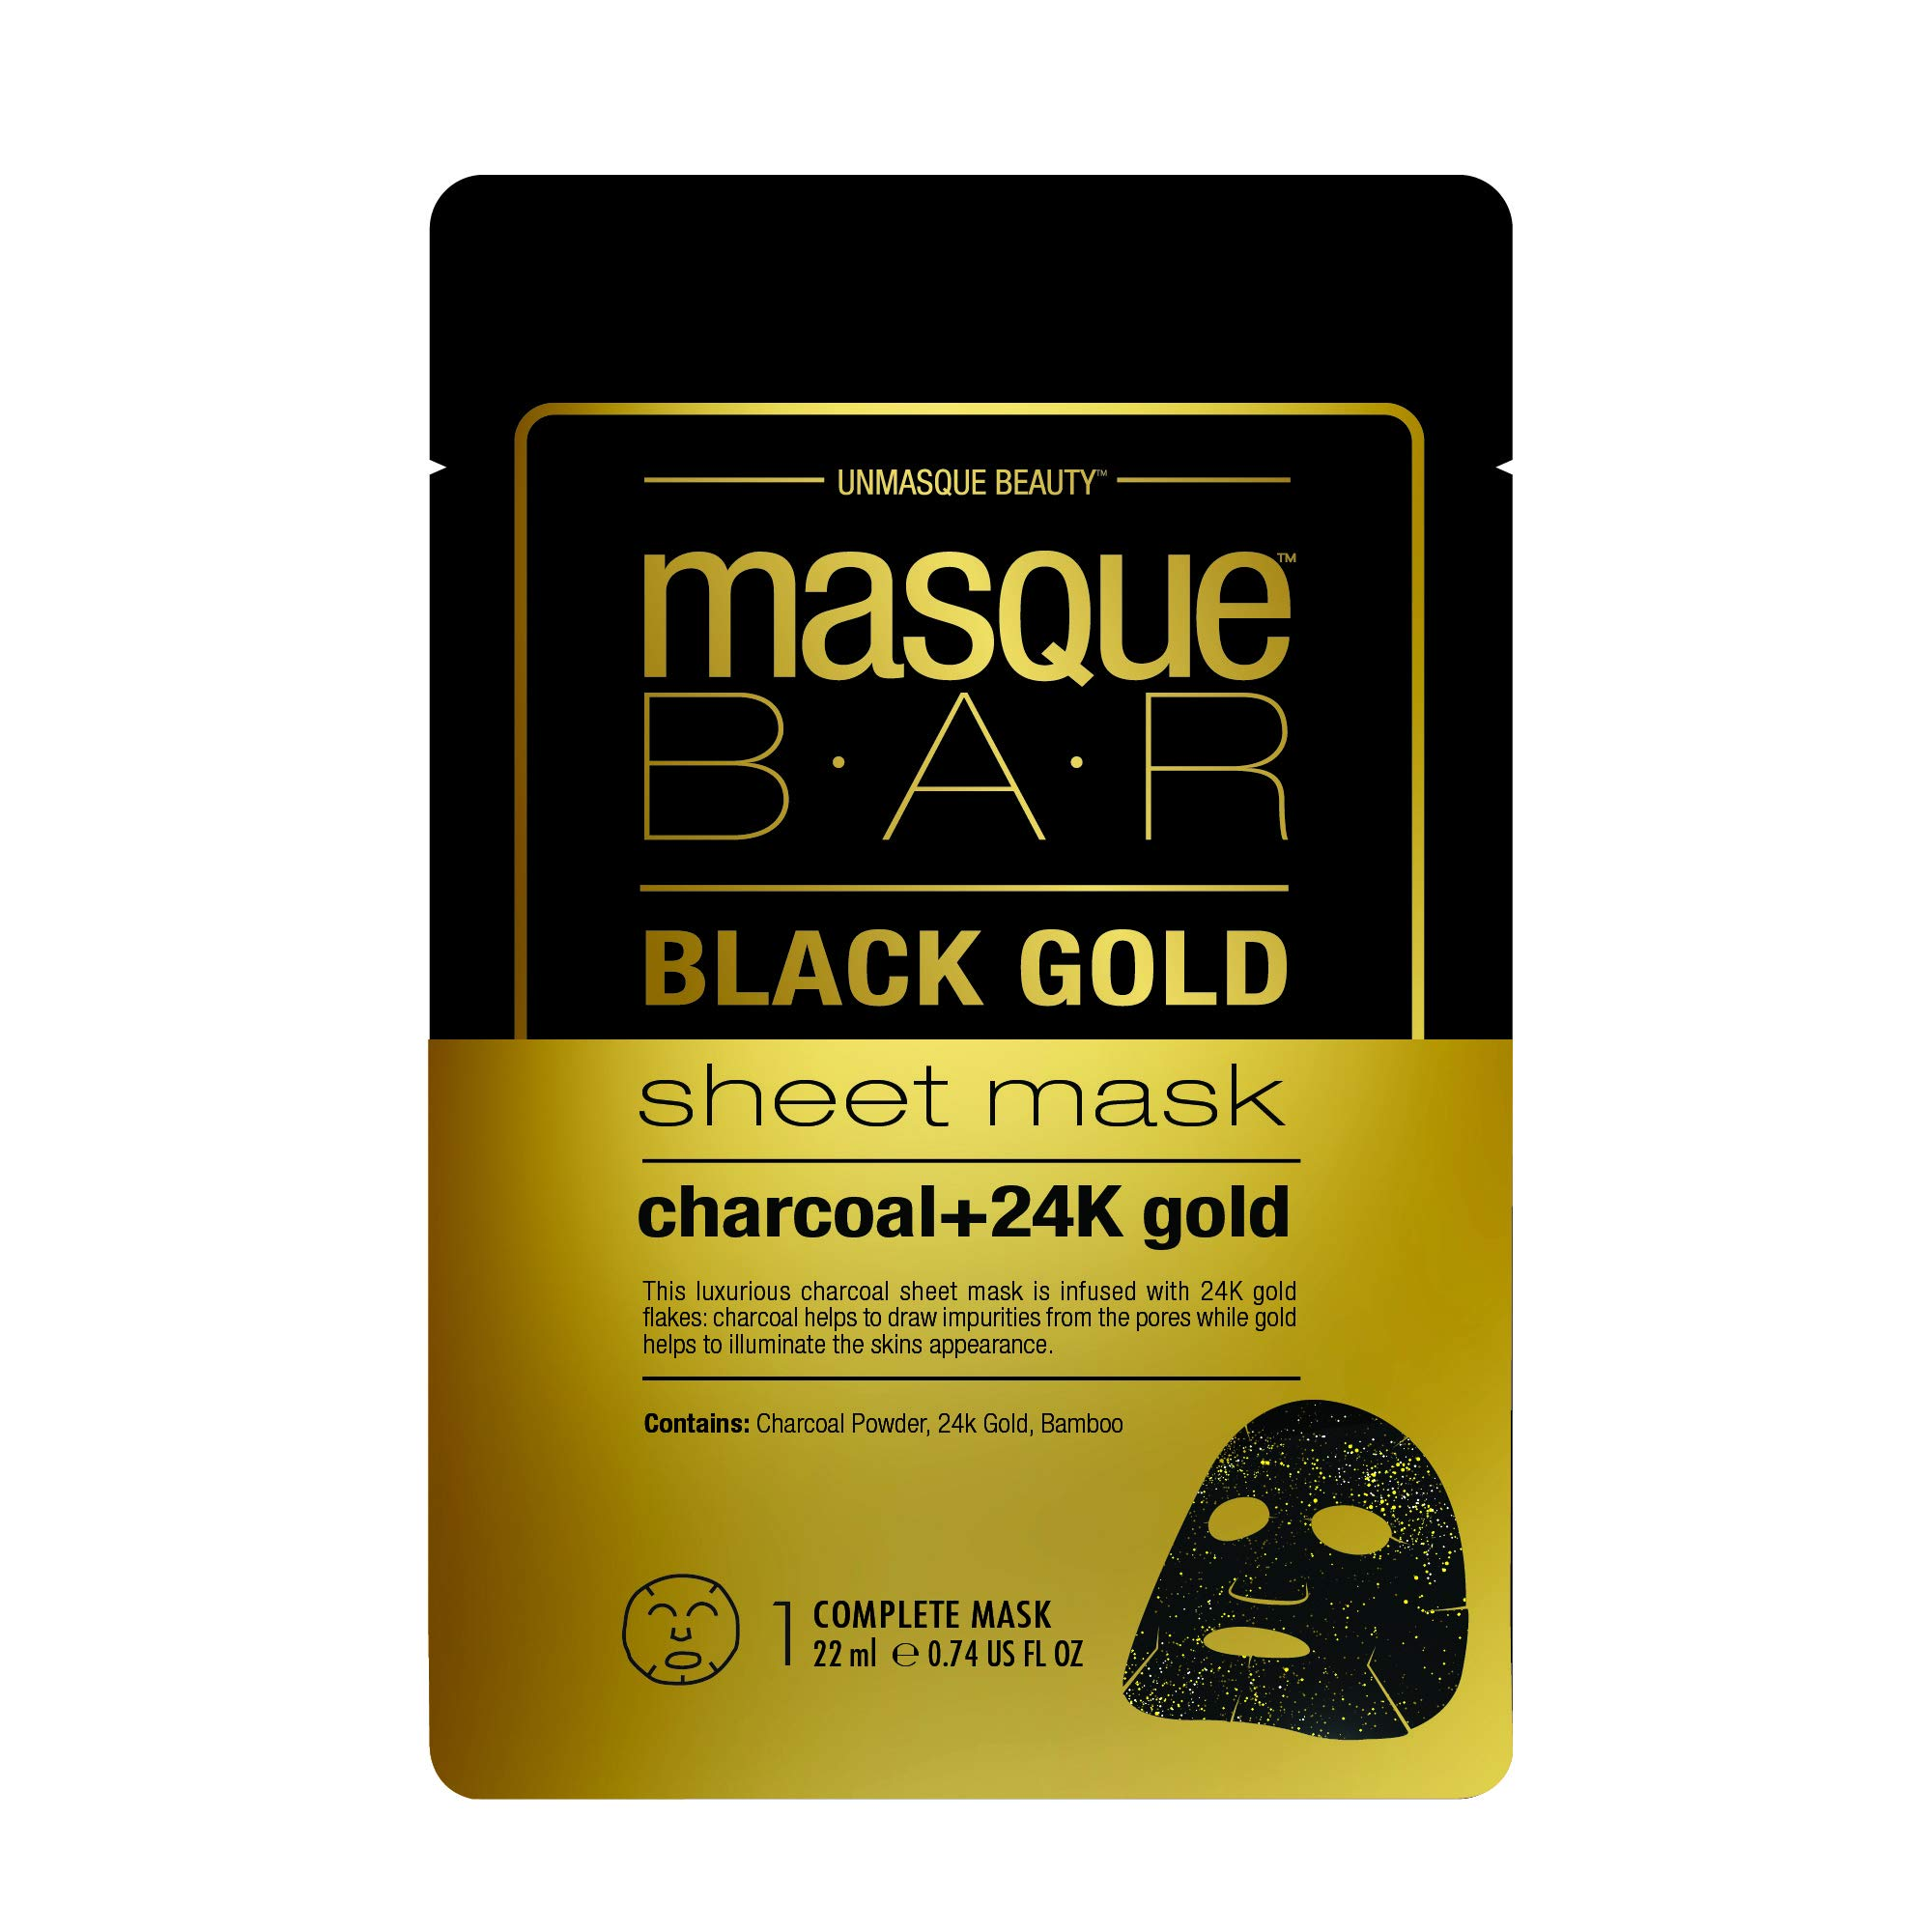 null - masque BAR Black Gold Sheet Mask with 24k Gold, Charcoal Powder, and Bamboo - Enriched Pore Refiner to Brighten Skin - Made in Korea